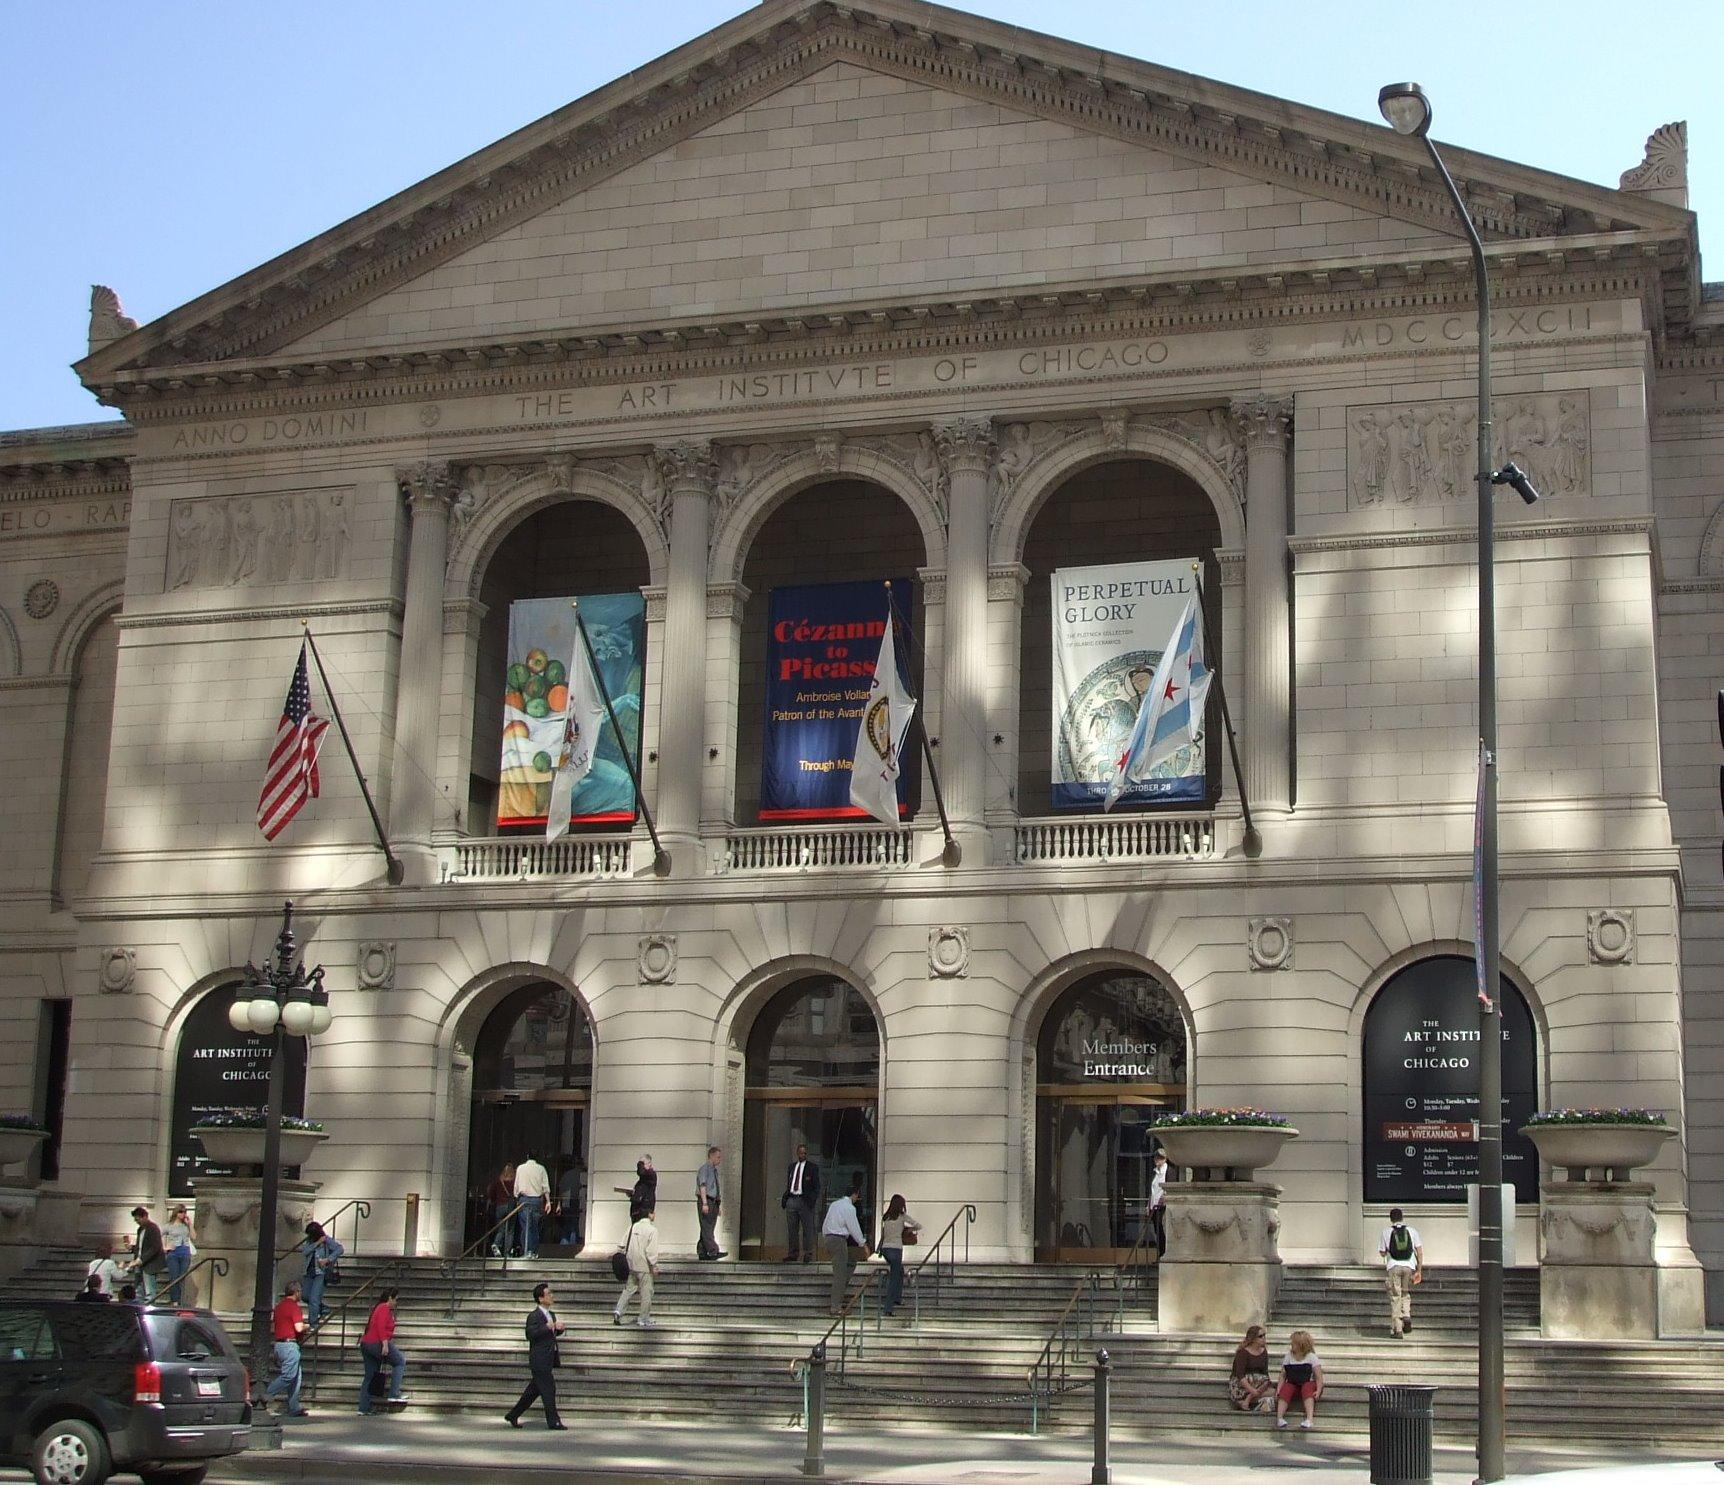 Museums like the Art Institute of Chicago and The International Museum of Surgical Science, among others, have free days available.